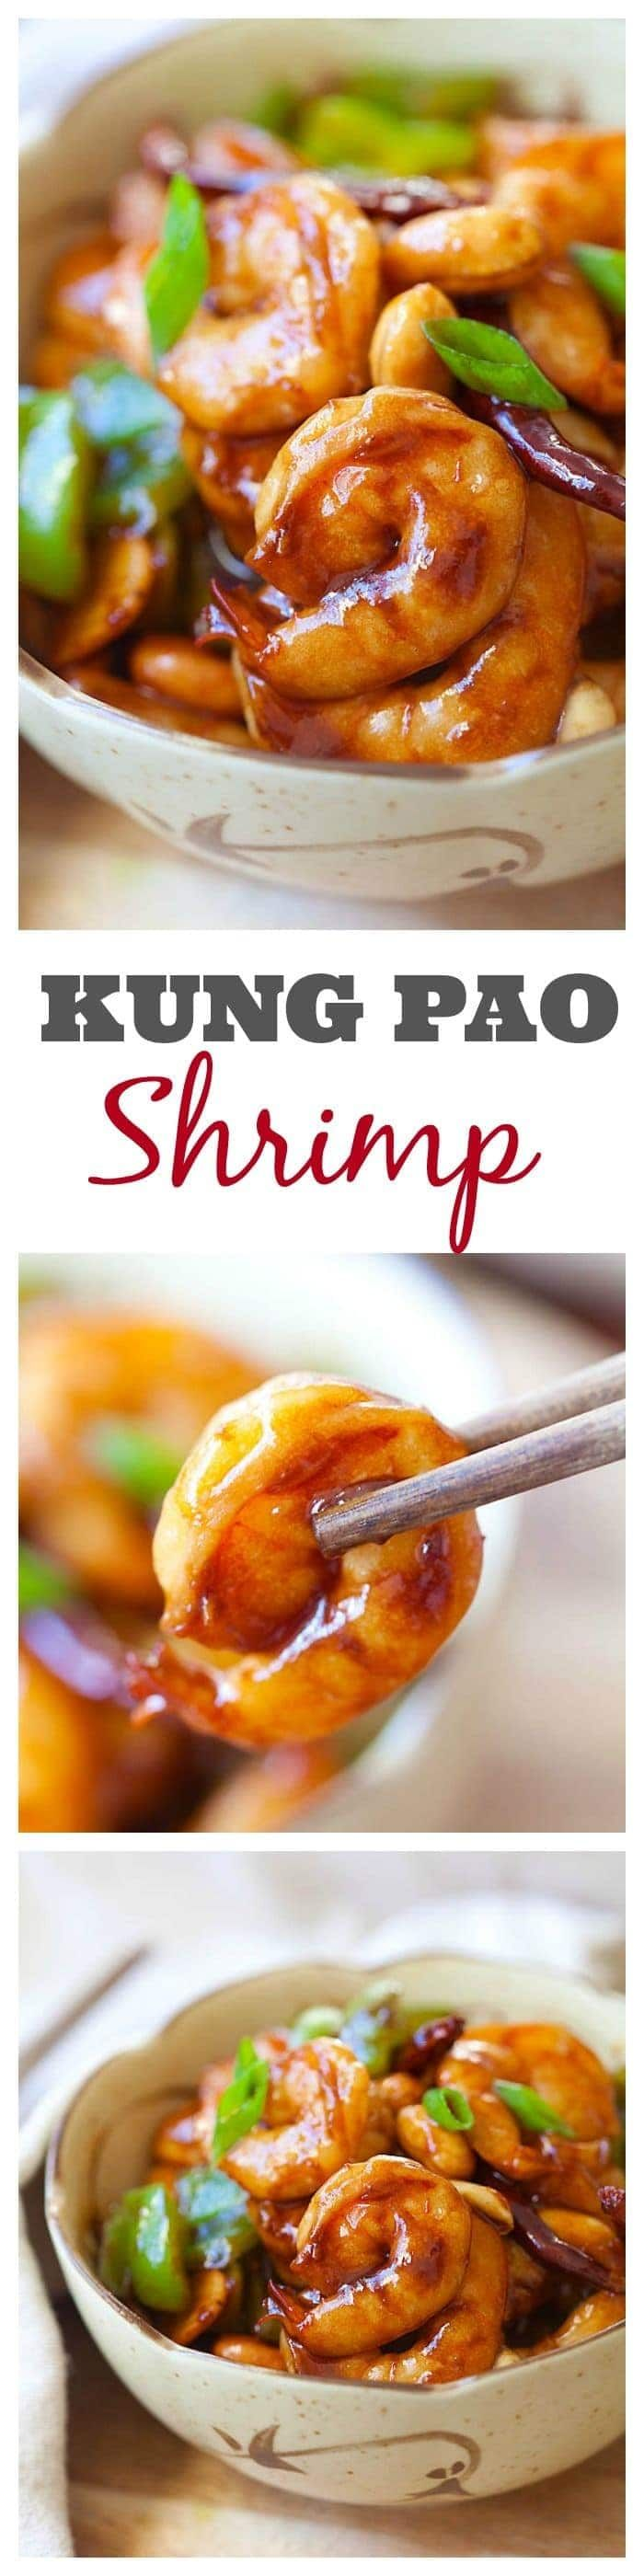 Kung Pao Shrimp recipe that is super easy to make at home, less than 30 minutes but much better and healthier than Kung Pao Shrimp takeout from restaurants | rasamalaysia.com